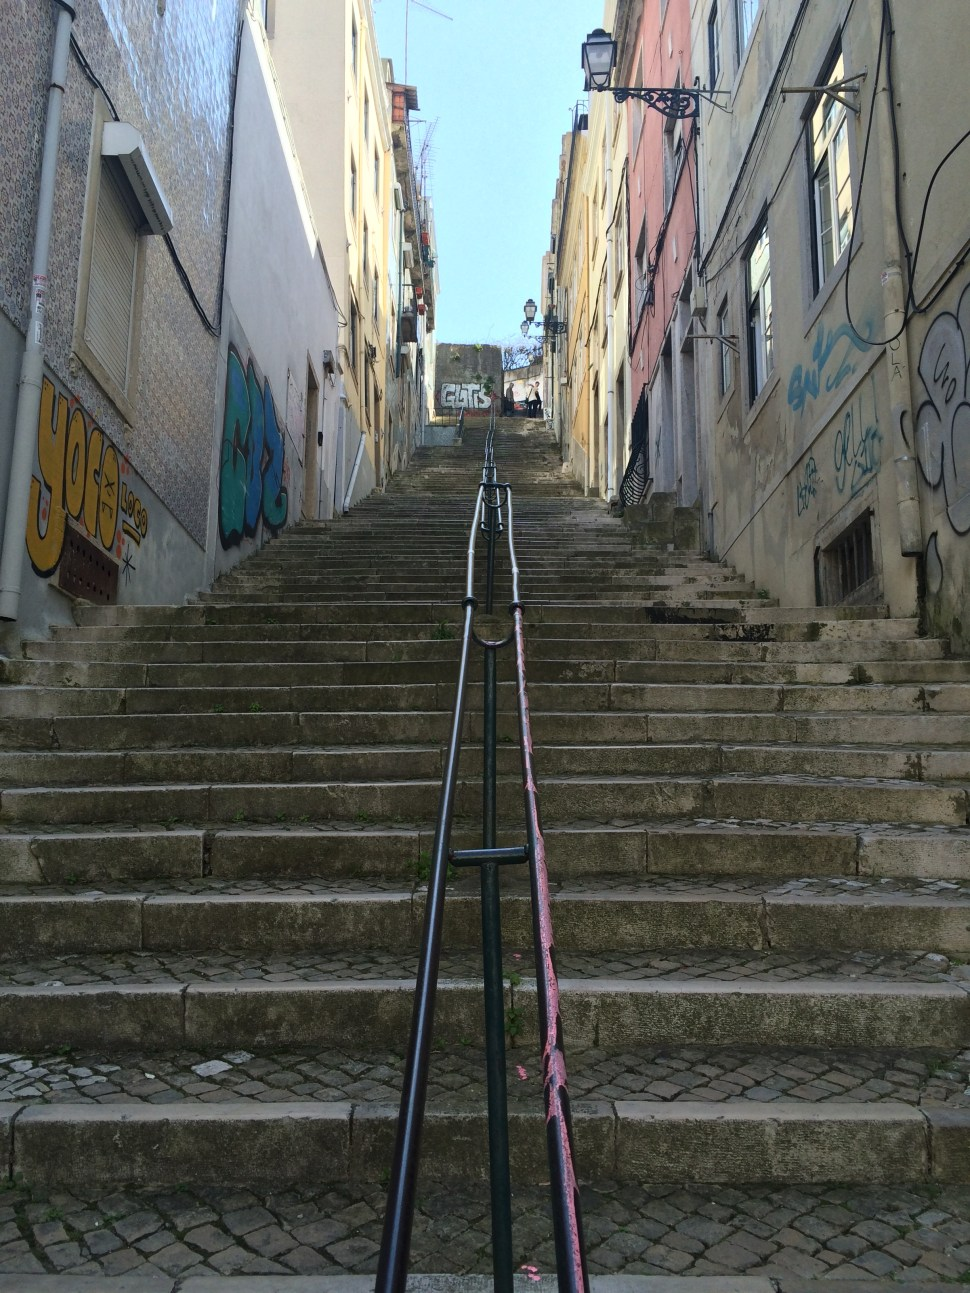 Steps, steps, and more steps